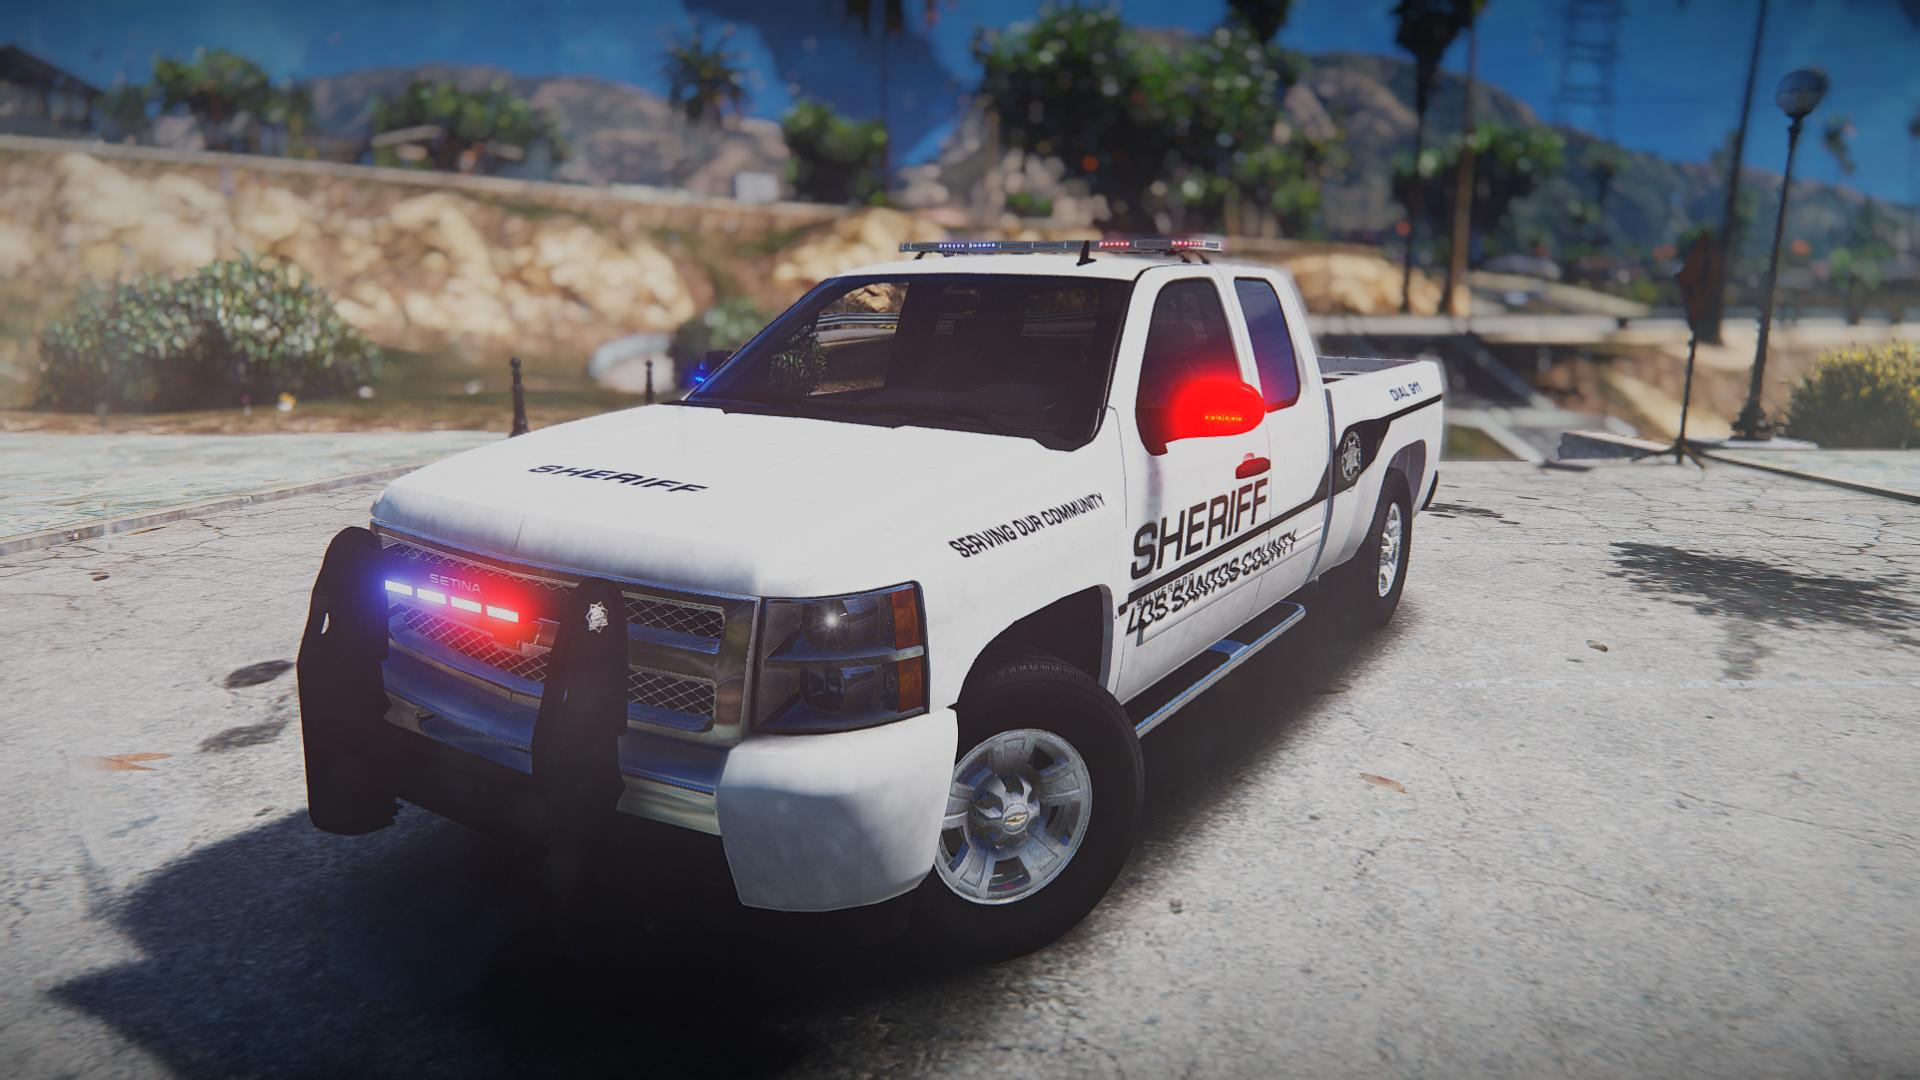 Chevy Silverado Law Enforcement [Template